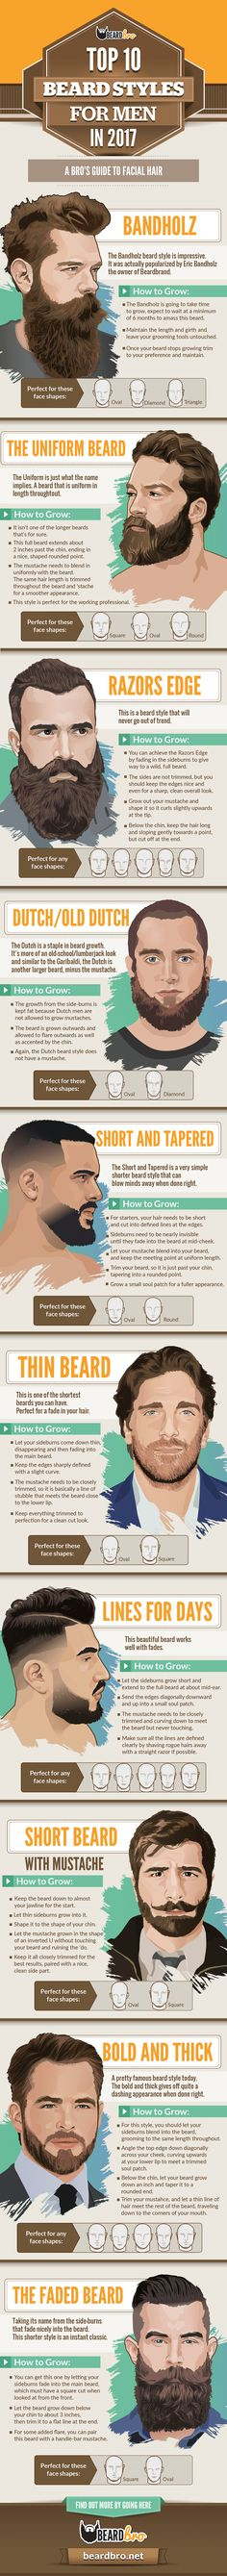 Top 23 Beard Styles for Men in 2017 - Beard Bro